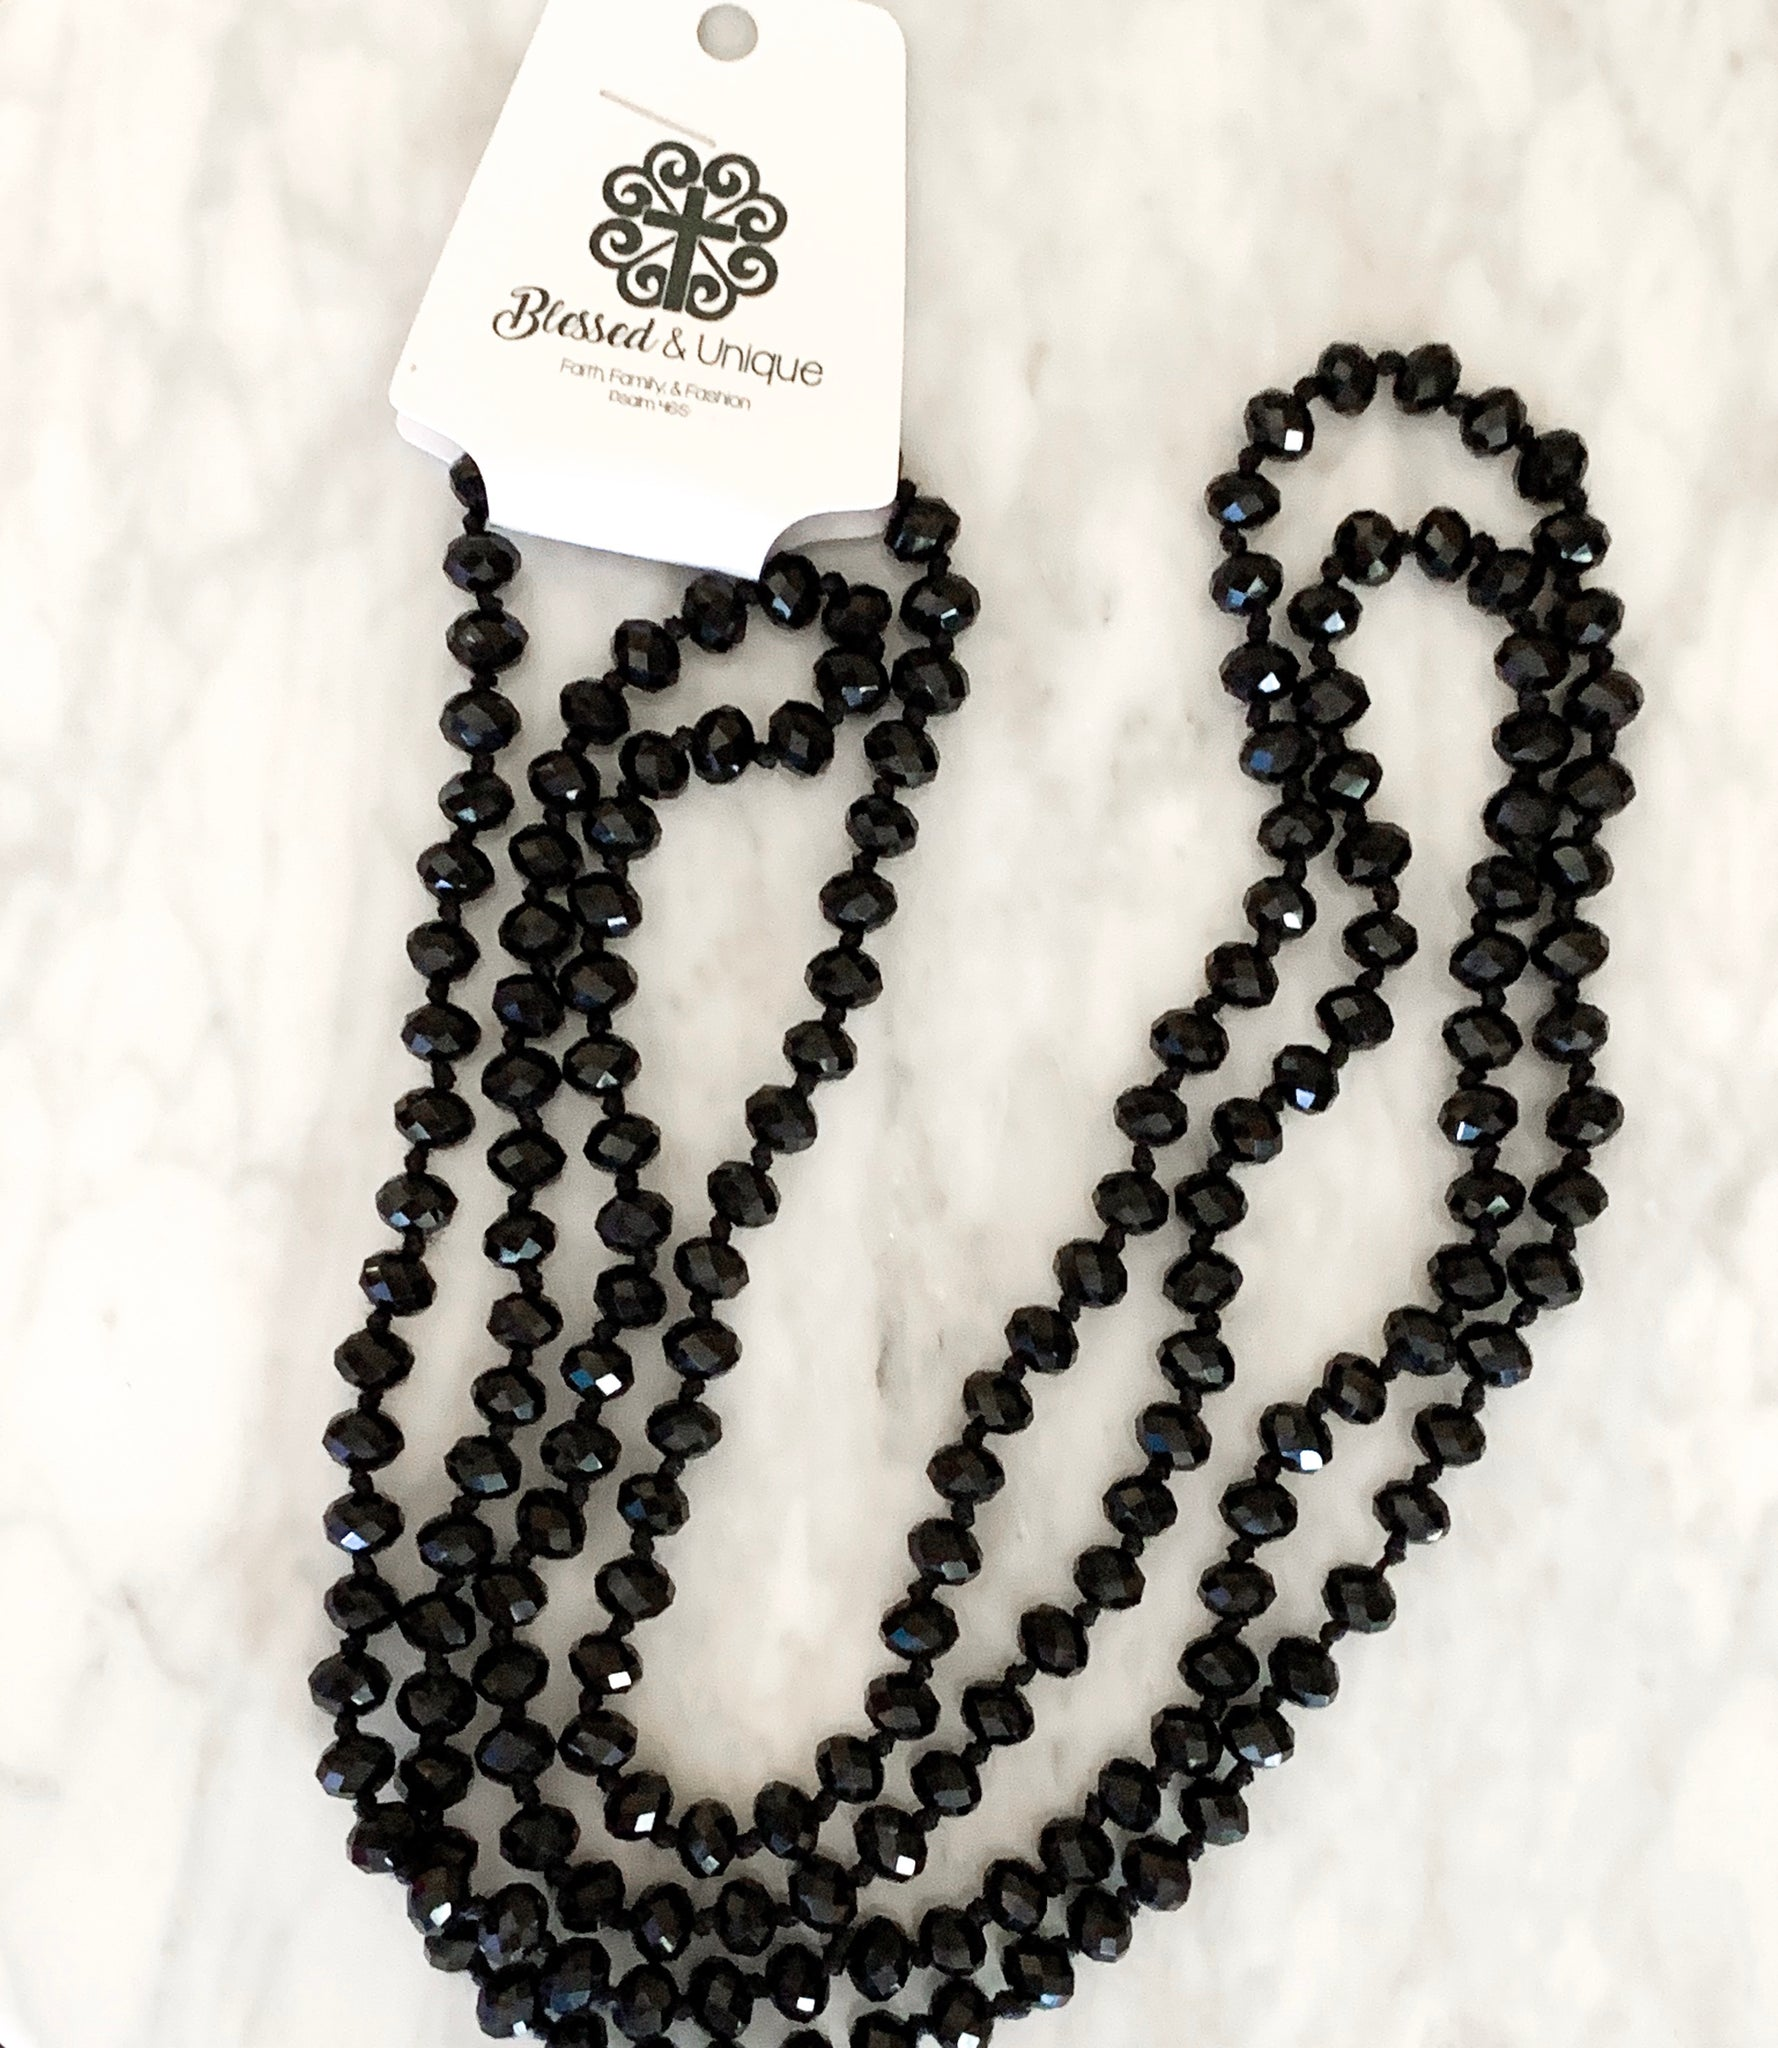 Blessed and Unique Beaded Necklace-Black